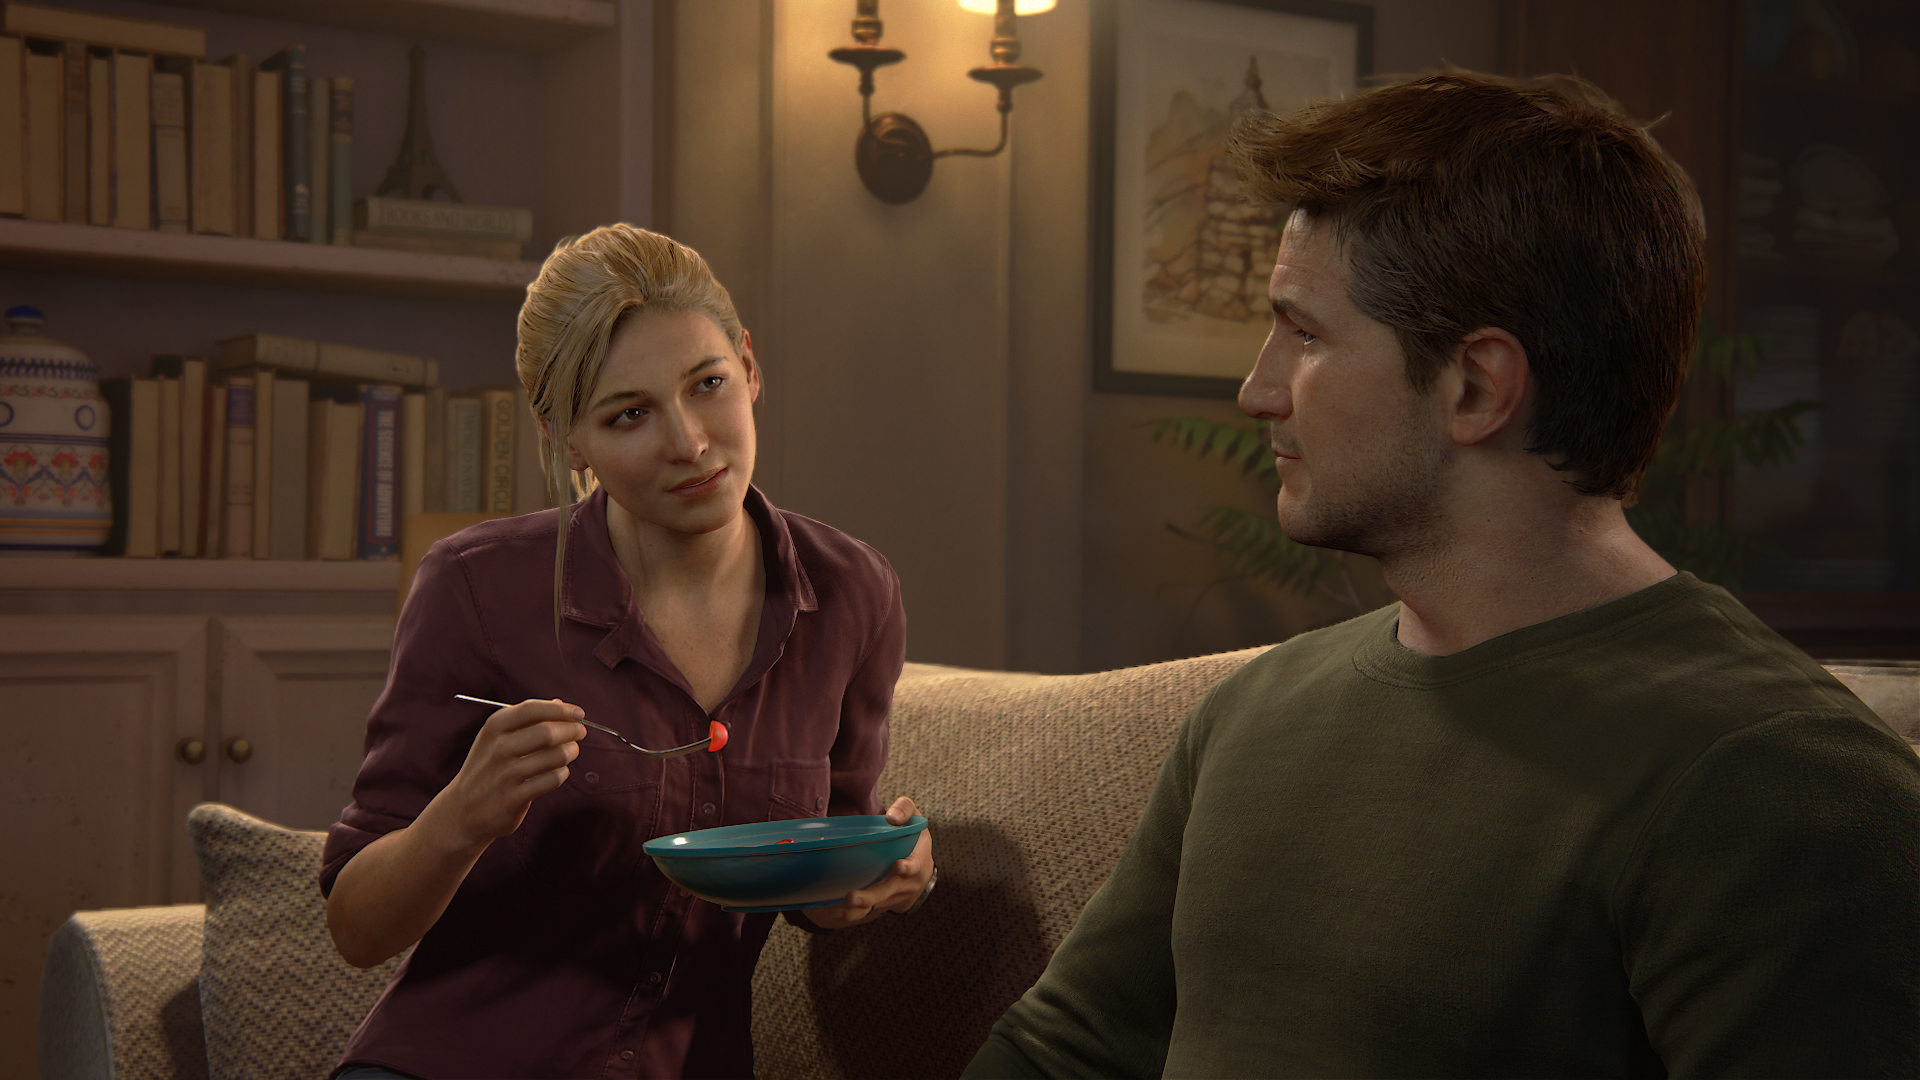 uncharted 4 home_02_1462361350